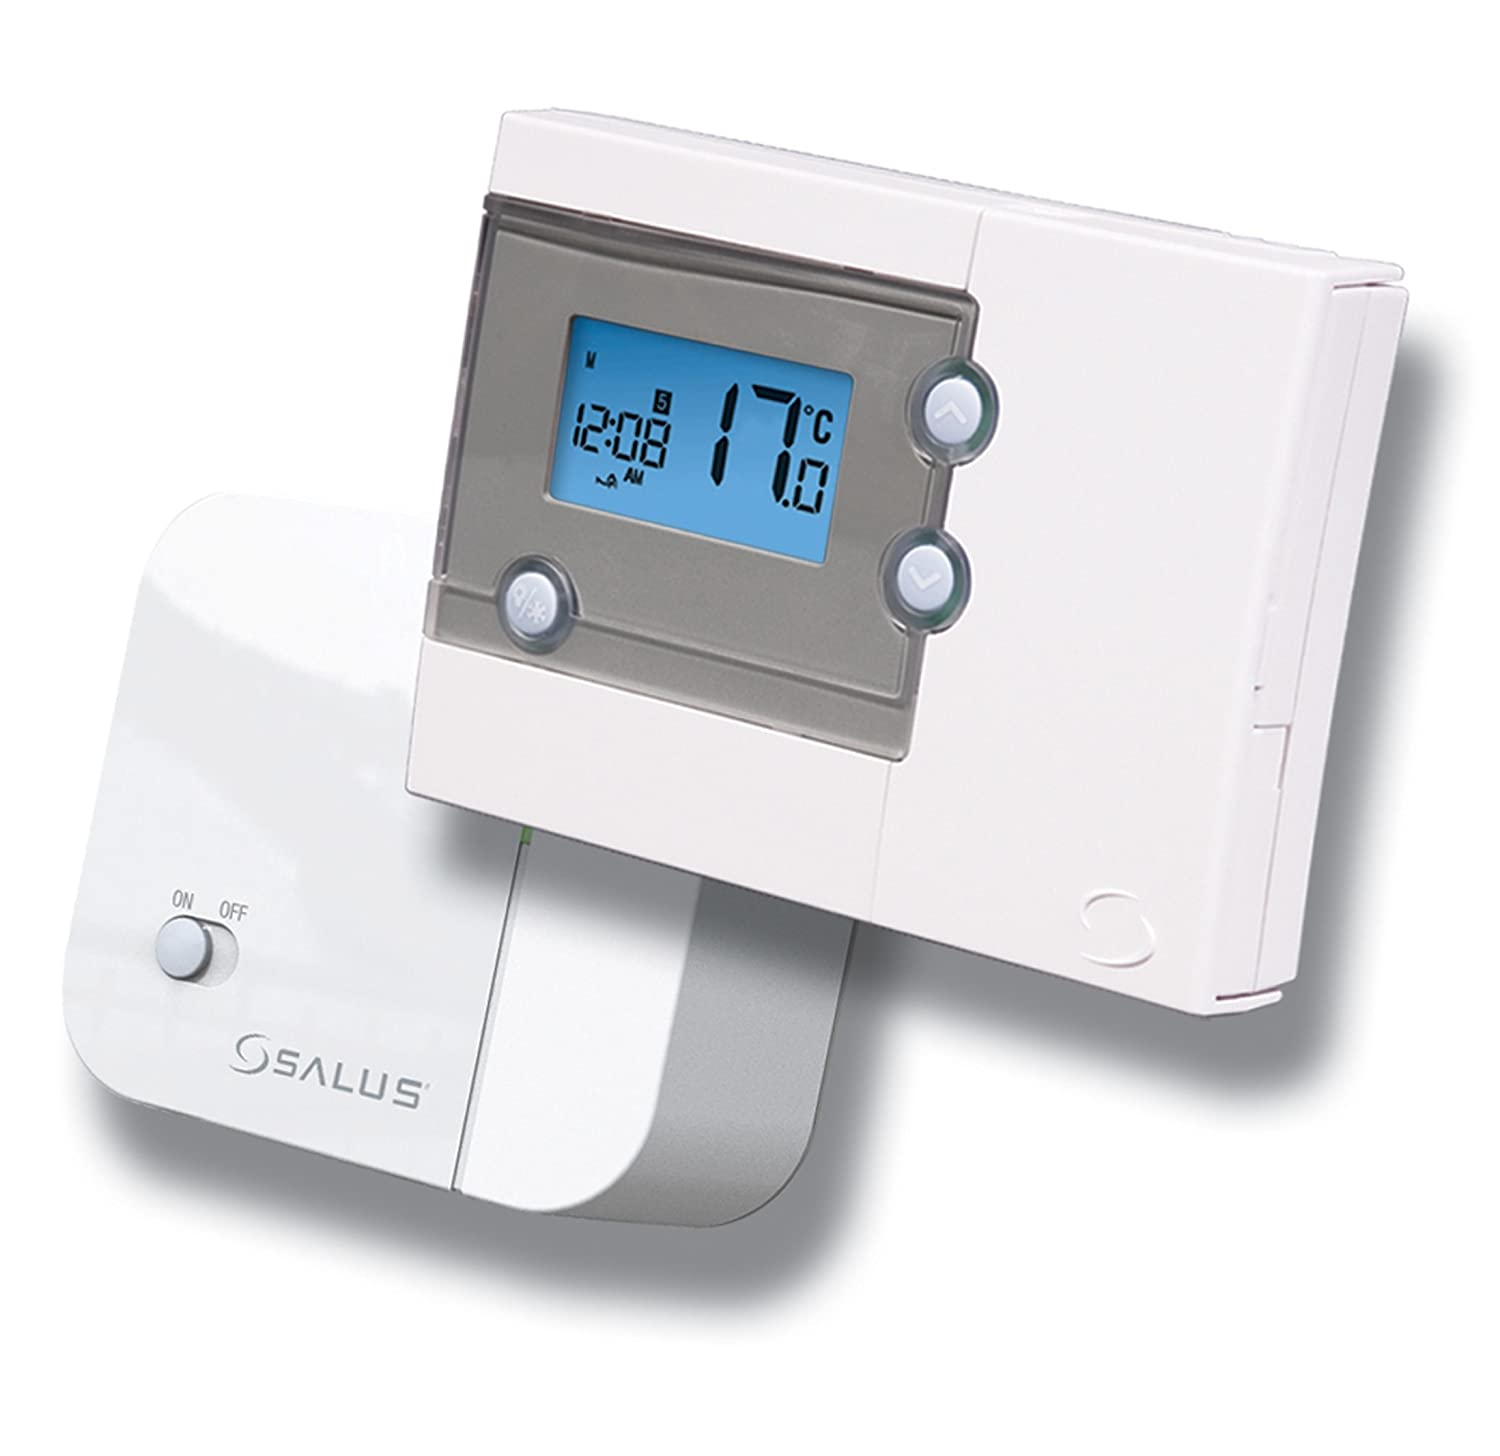 Salus RT500RF Programmable Radio Frequency Room Thermostat - - Amazon.com